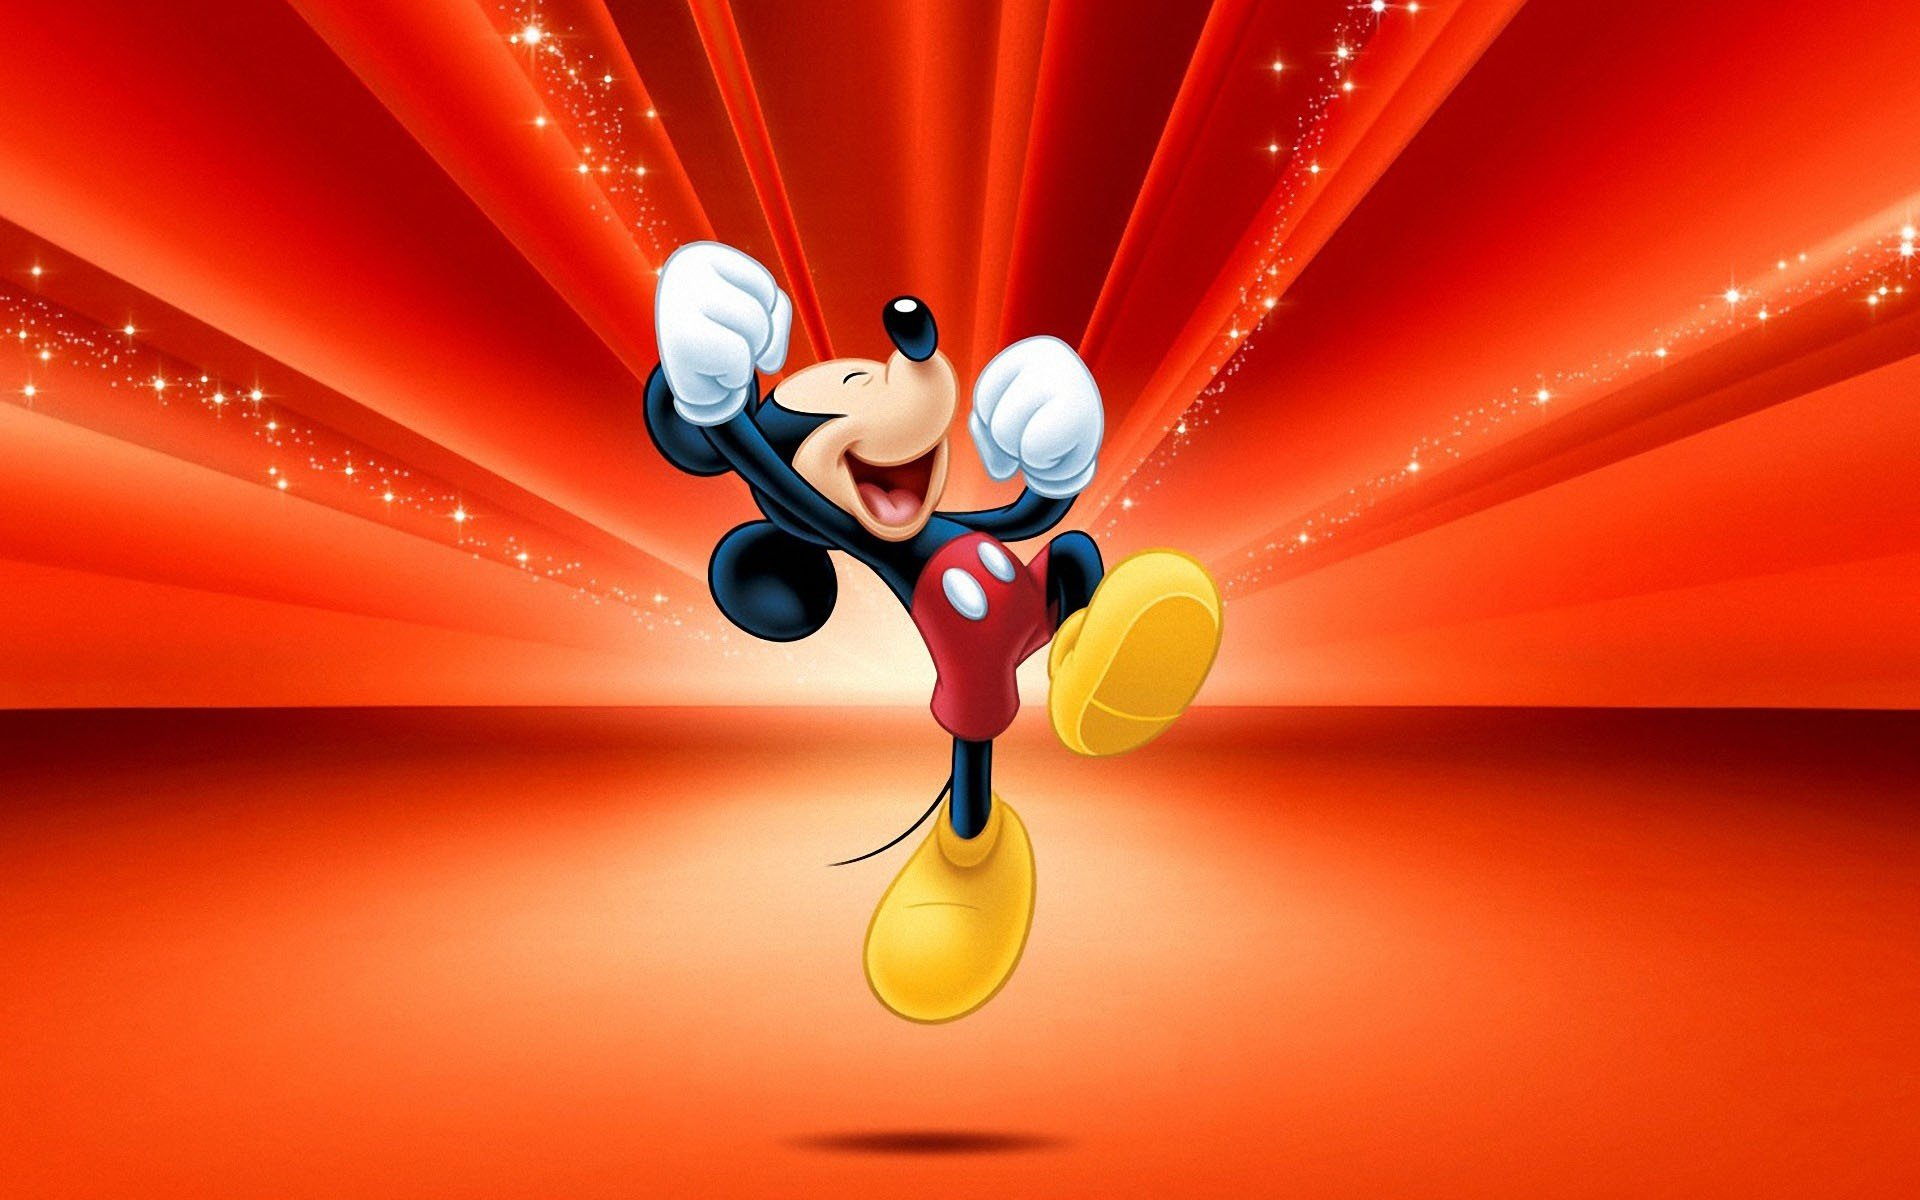 Mickey Mouse Wallpaper For Ipad